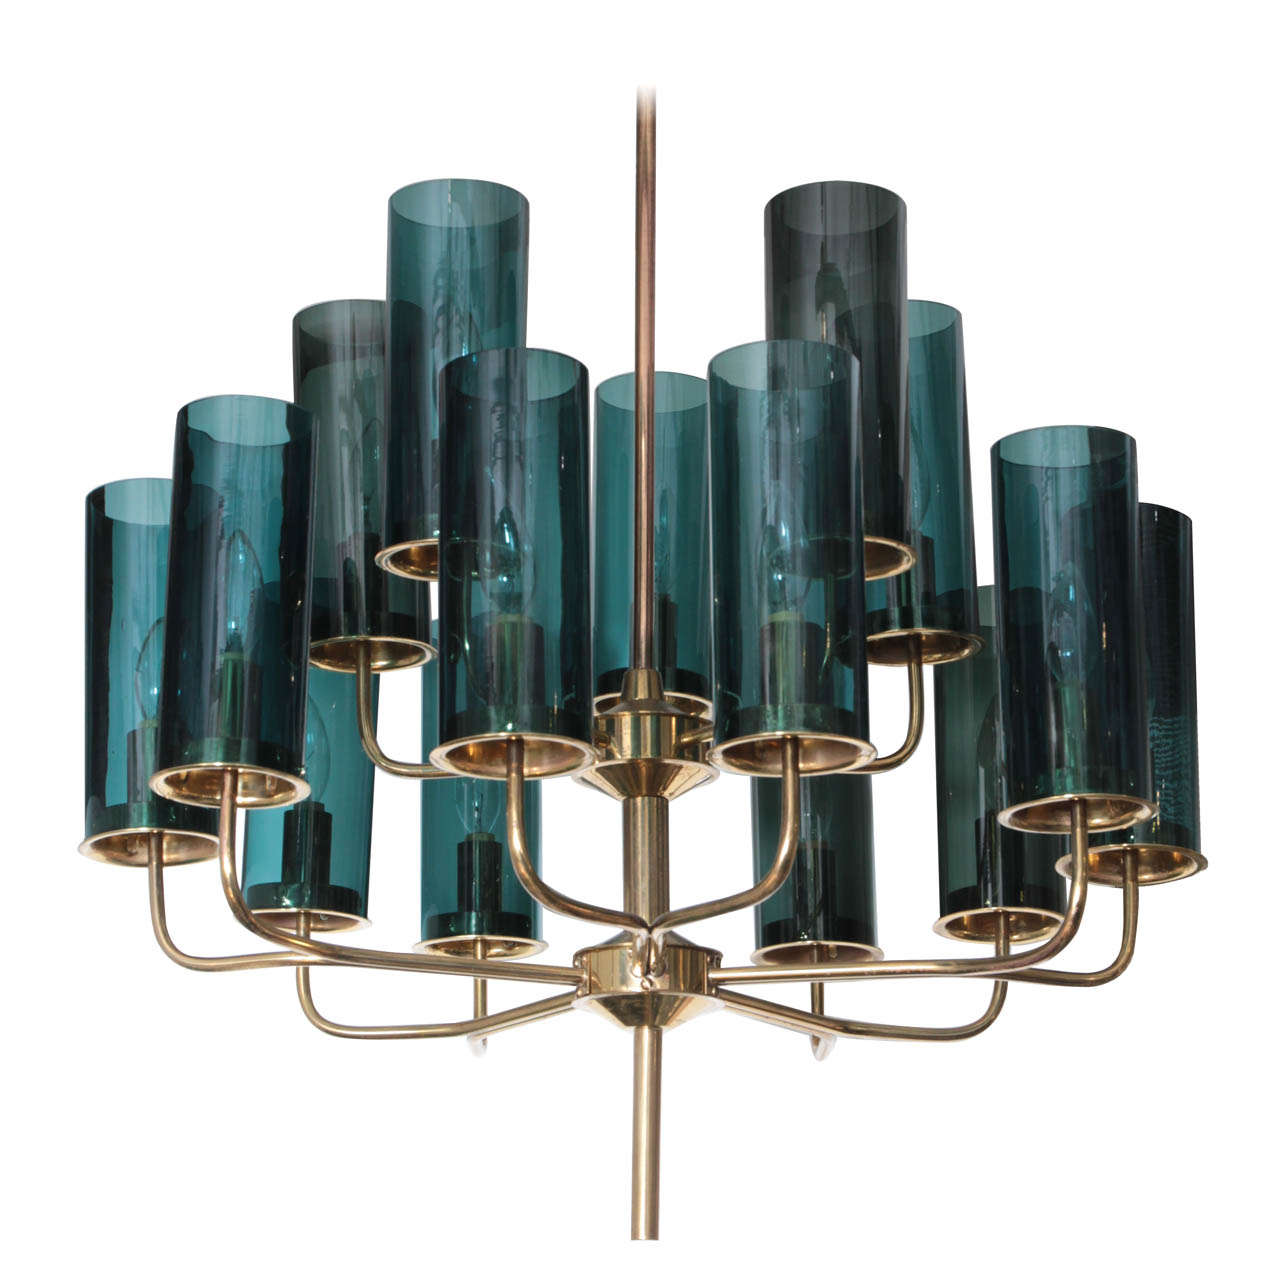 brass and blue glass tube chandelier by hans agne. Black Bedroom Furniture Sets. Home Design Ideas